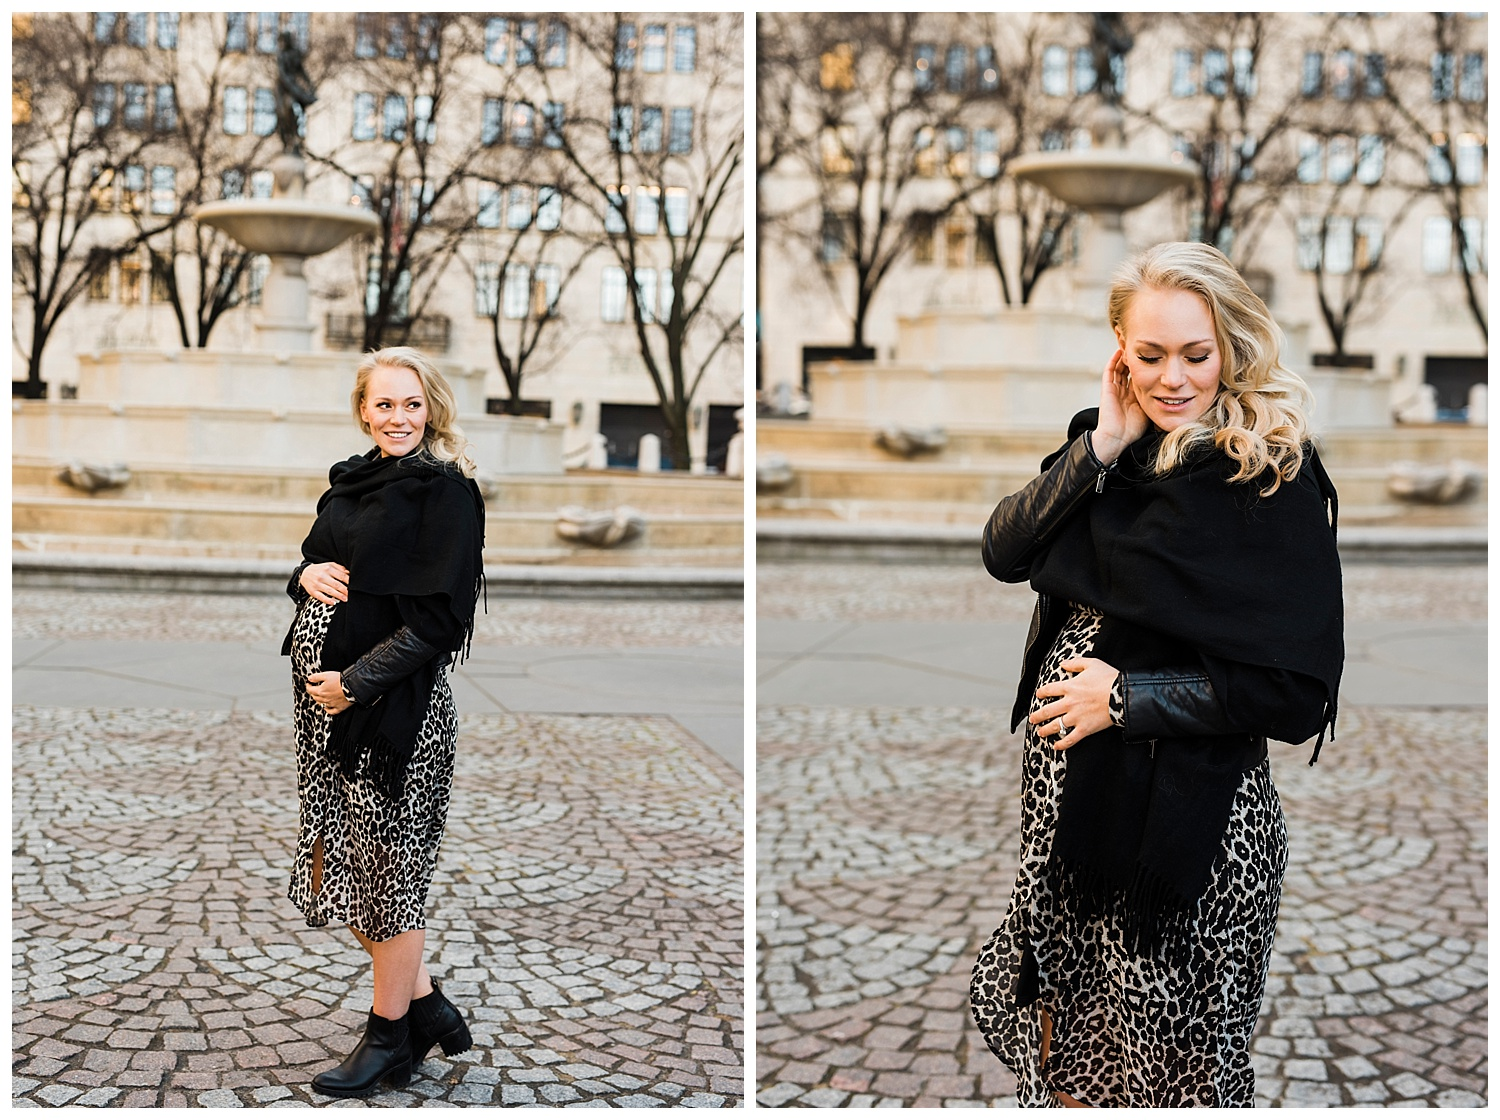 Krista_Maternity_Photos_Central_Park_NYC_Apollo_Fields_91.jpg